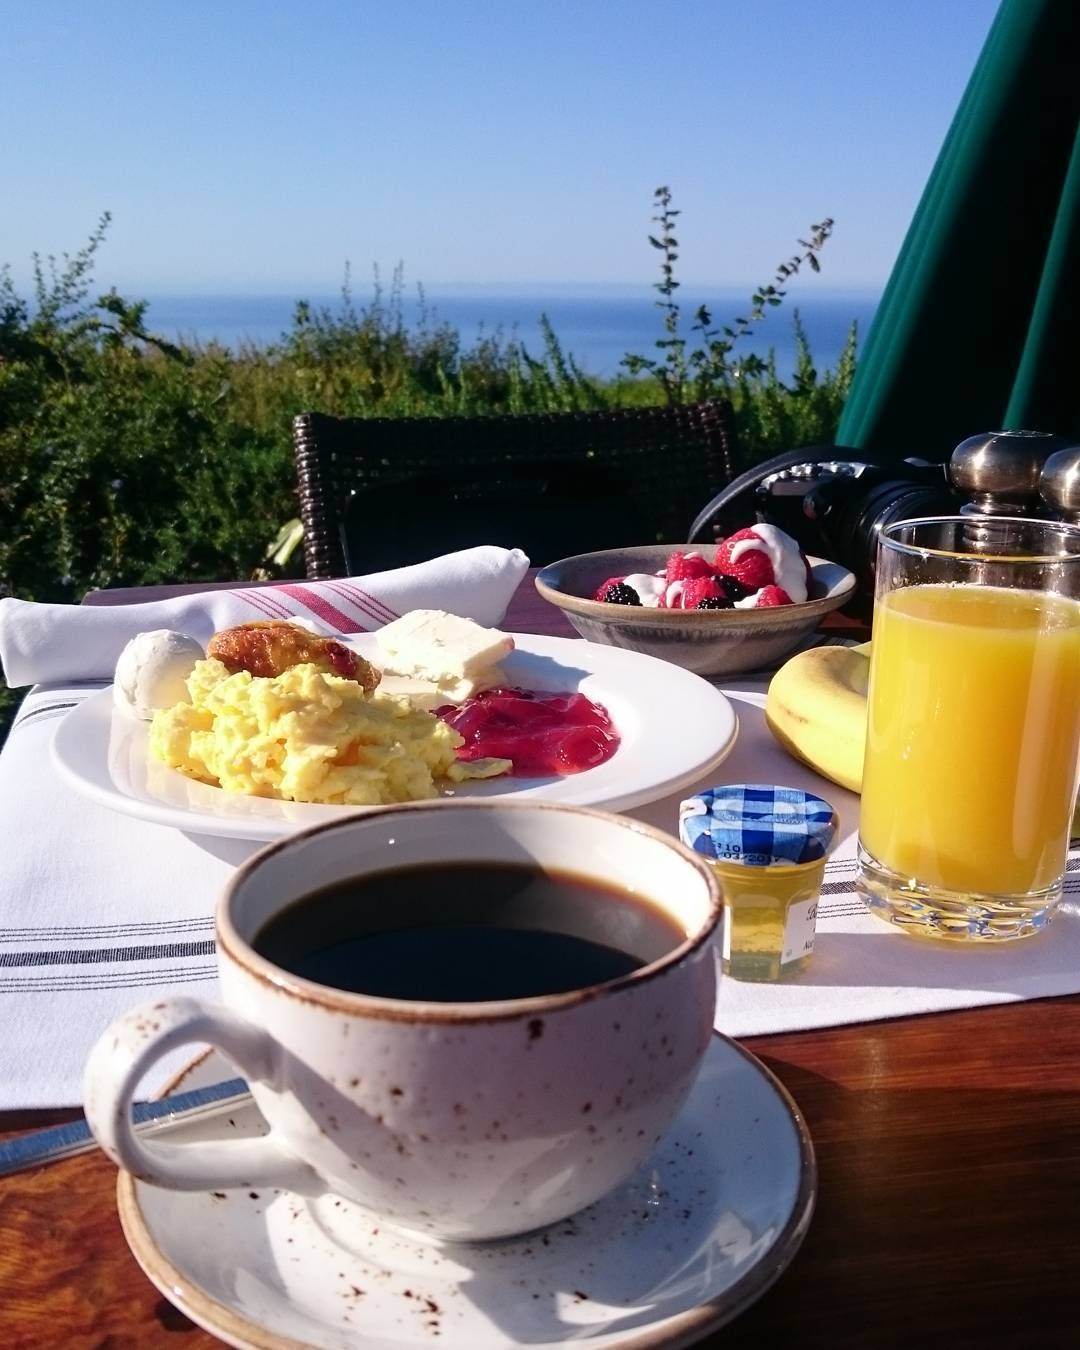 via @inyourbones: Breakfast at the edge of the world